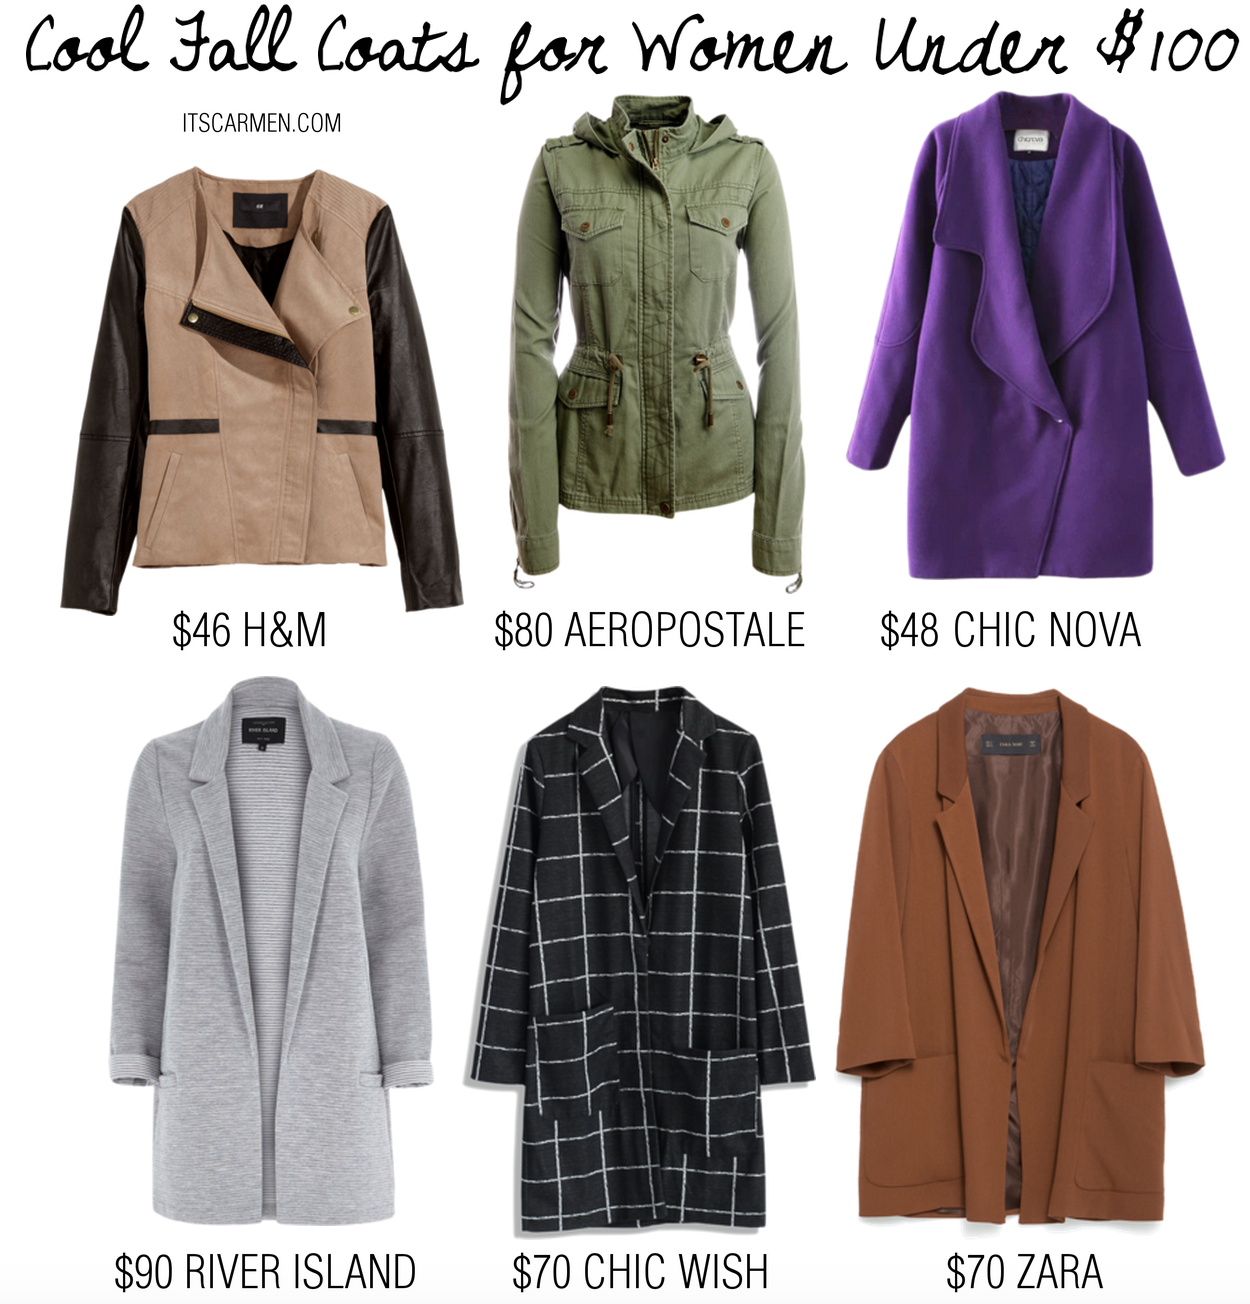 cool fall coats